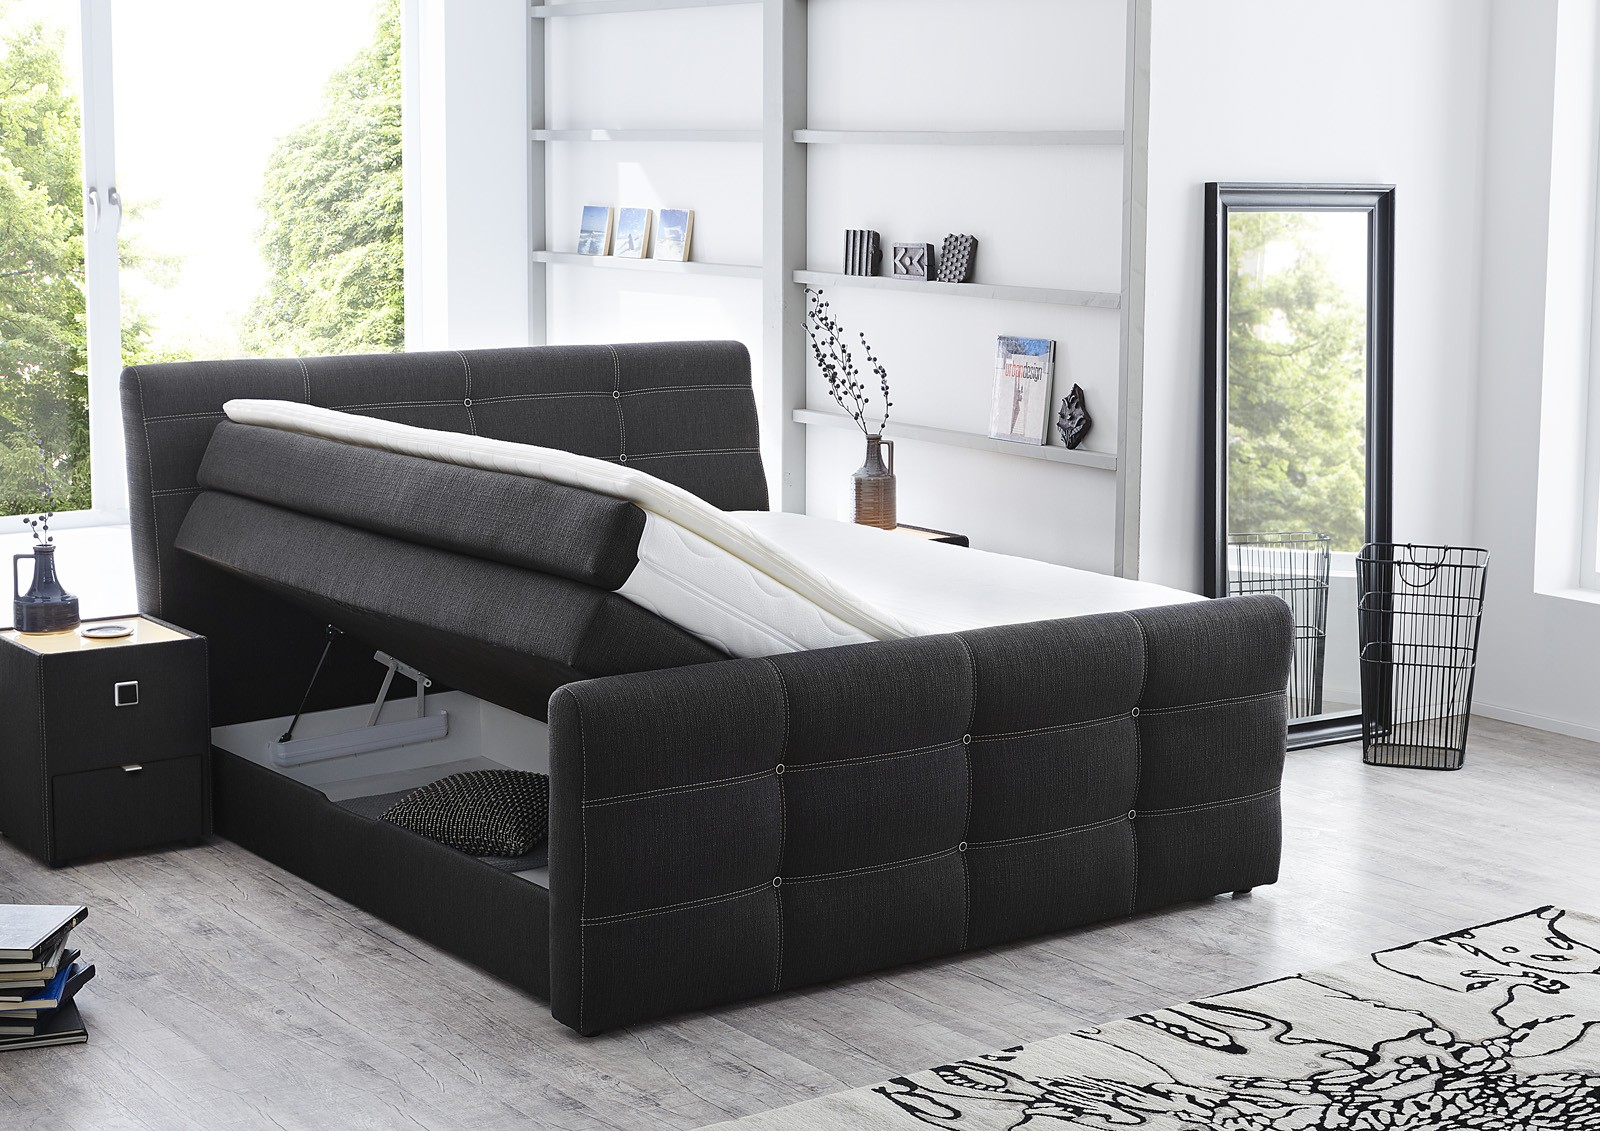 raumteiler aus fachwerk kreatives haus design. Black Bedroom Furniture Sets. Home Design Ideas